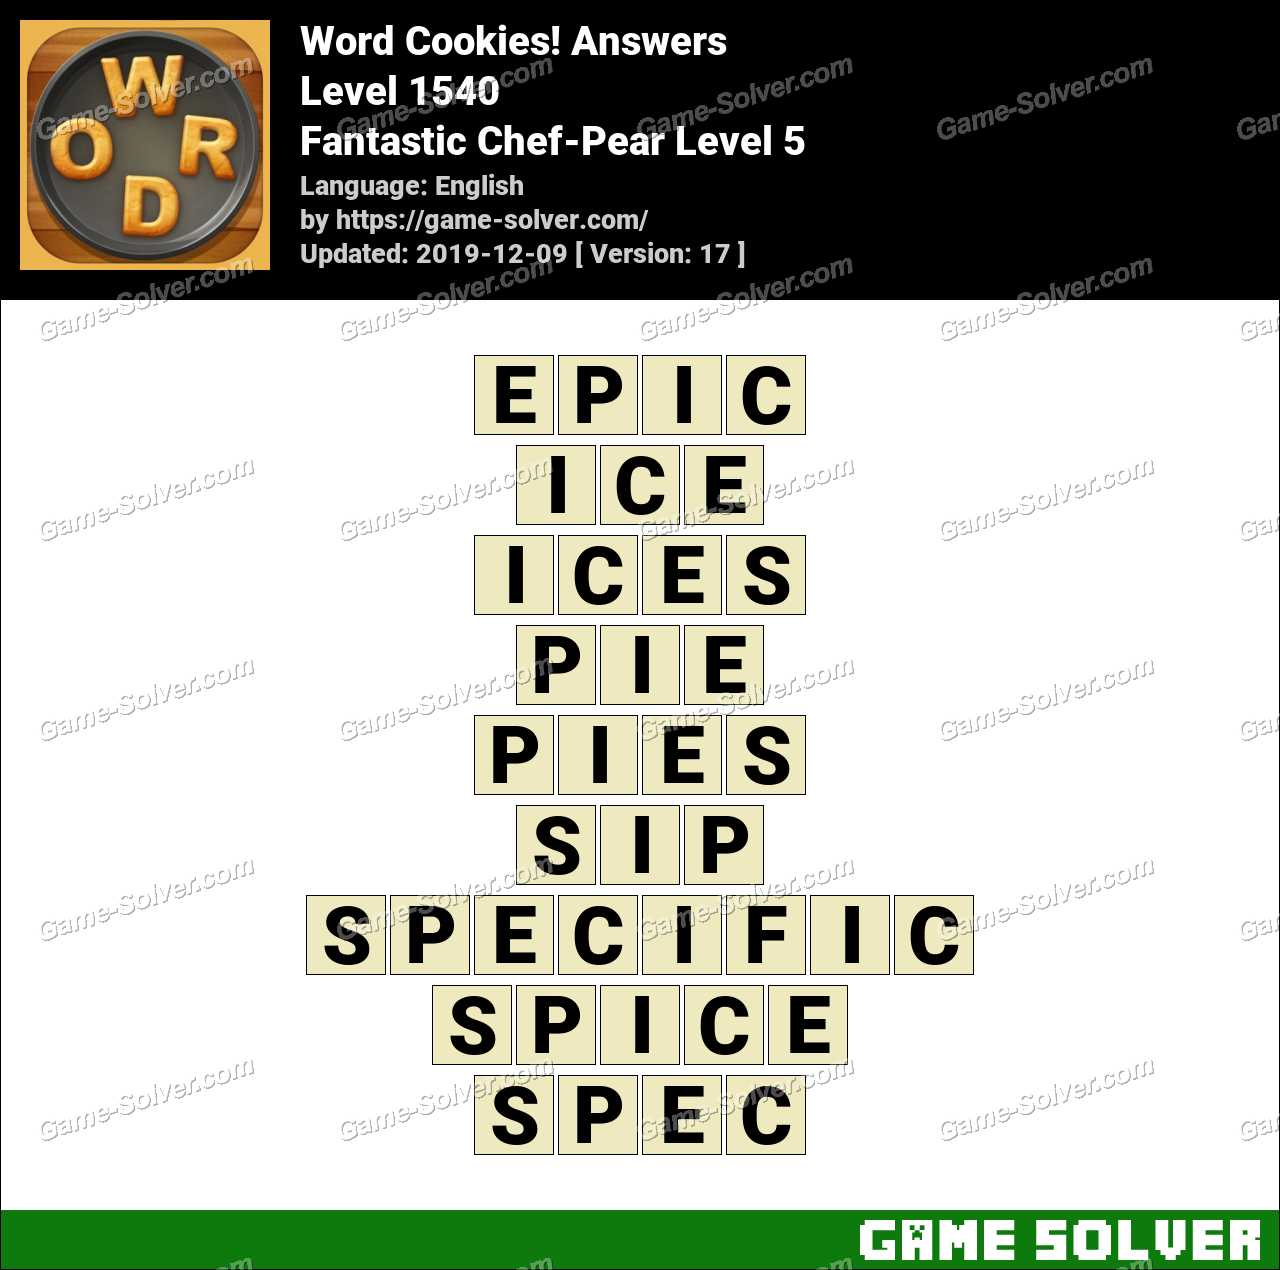 Word Cookies Fantastic Chef-Pear Level 5 Answers